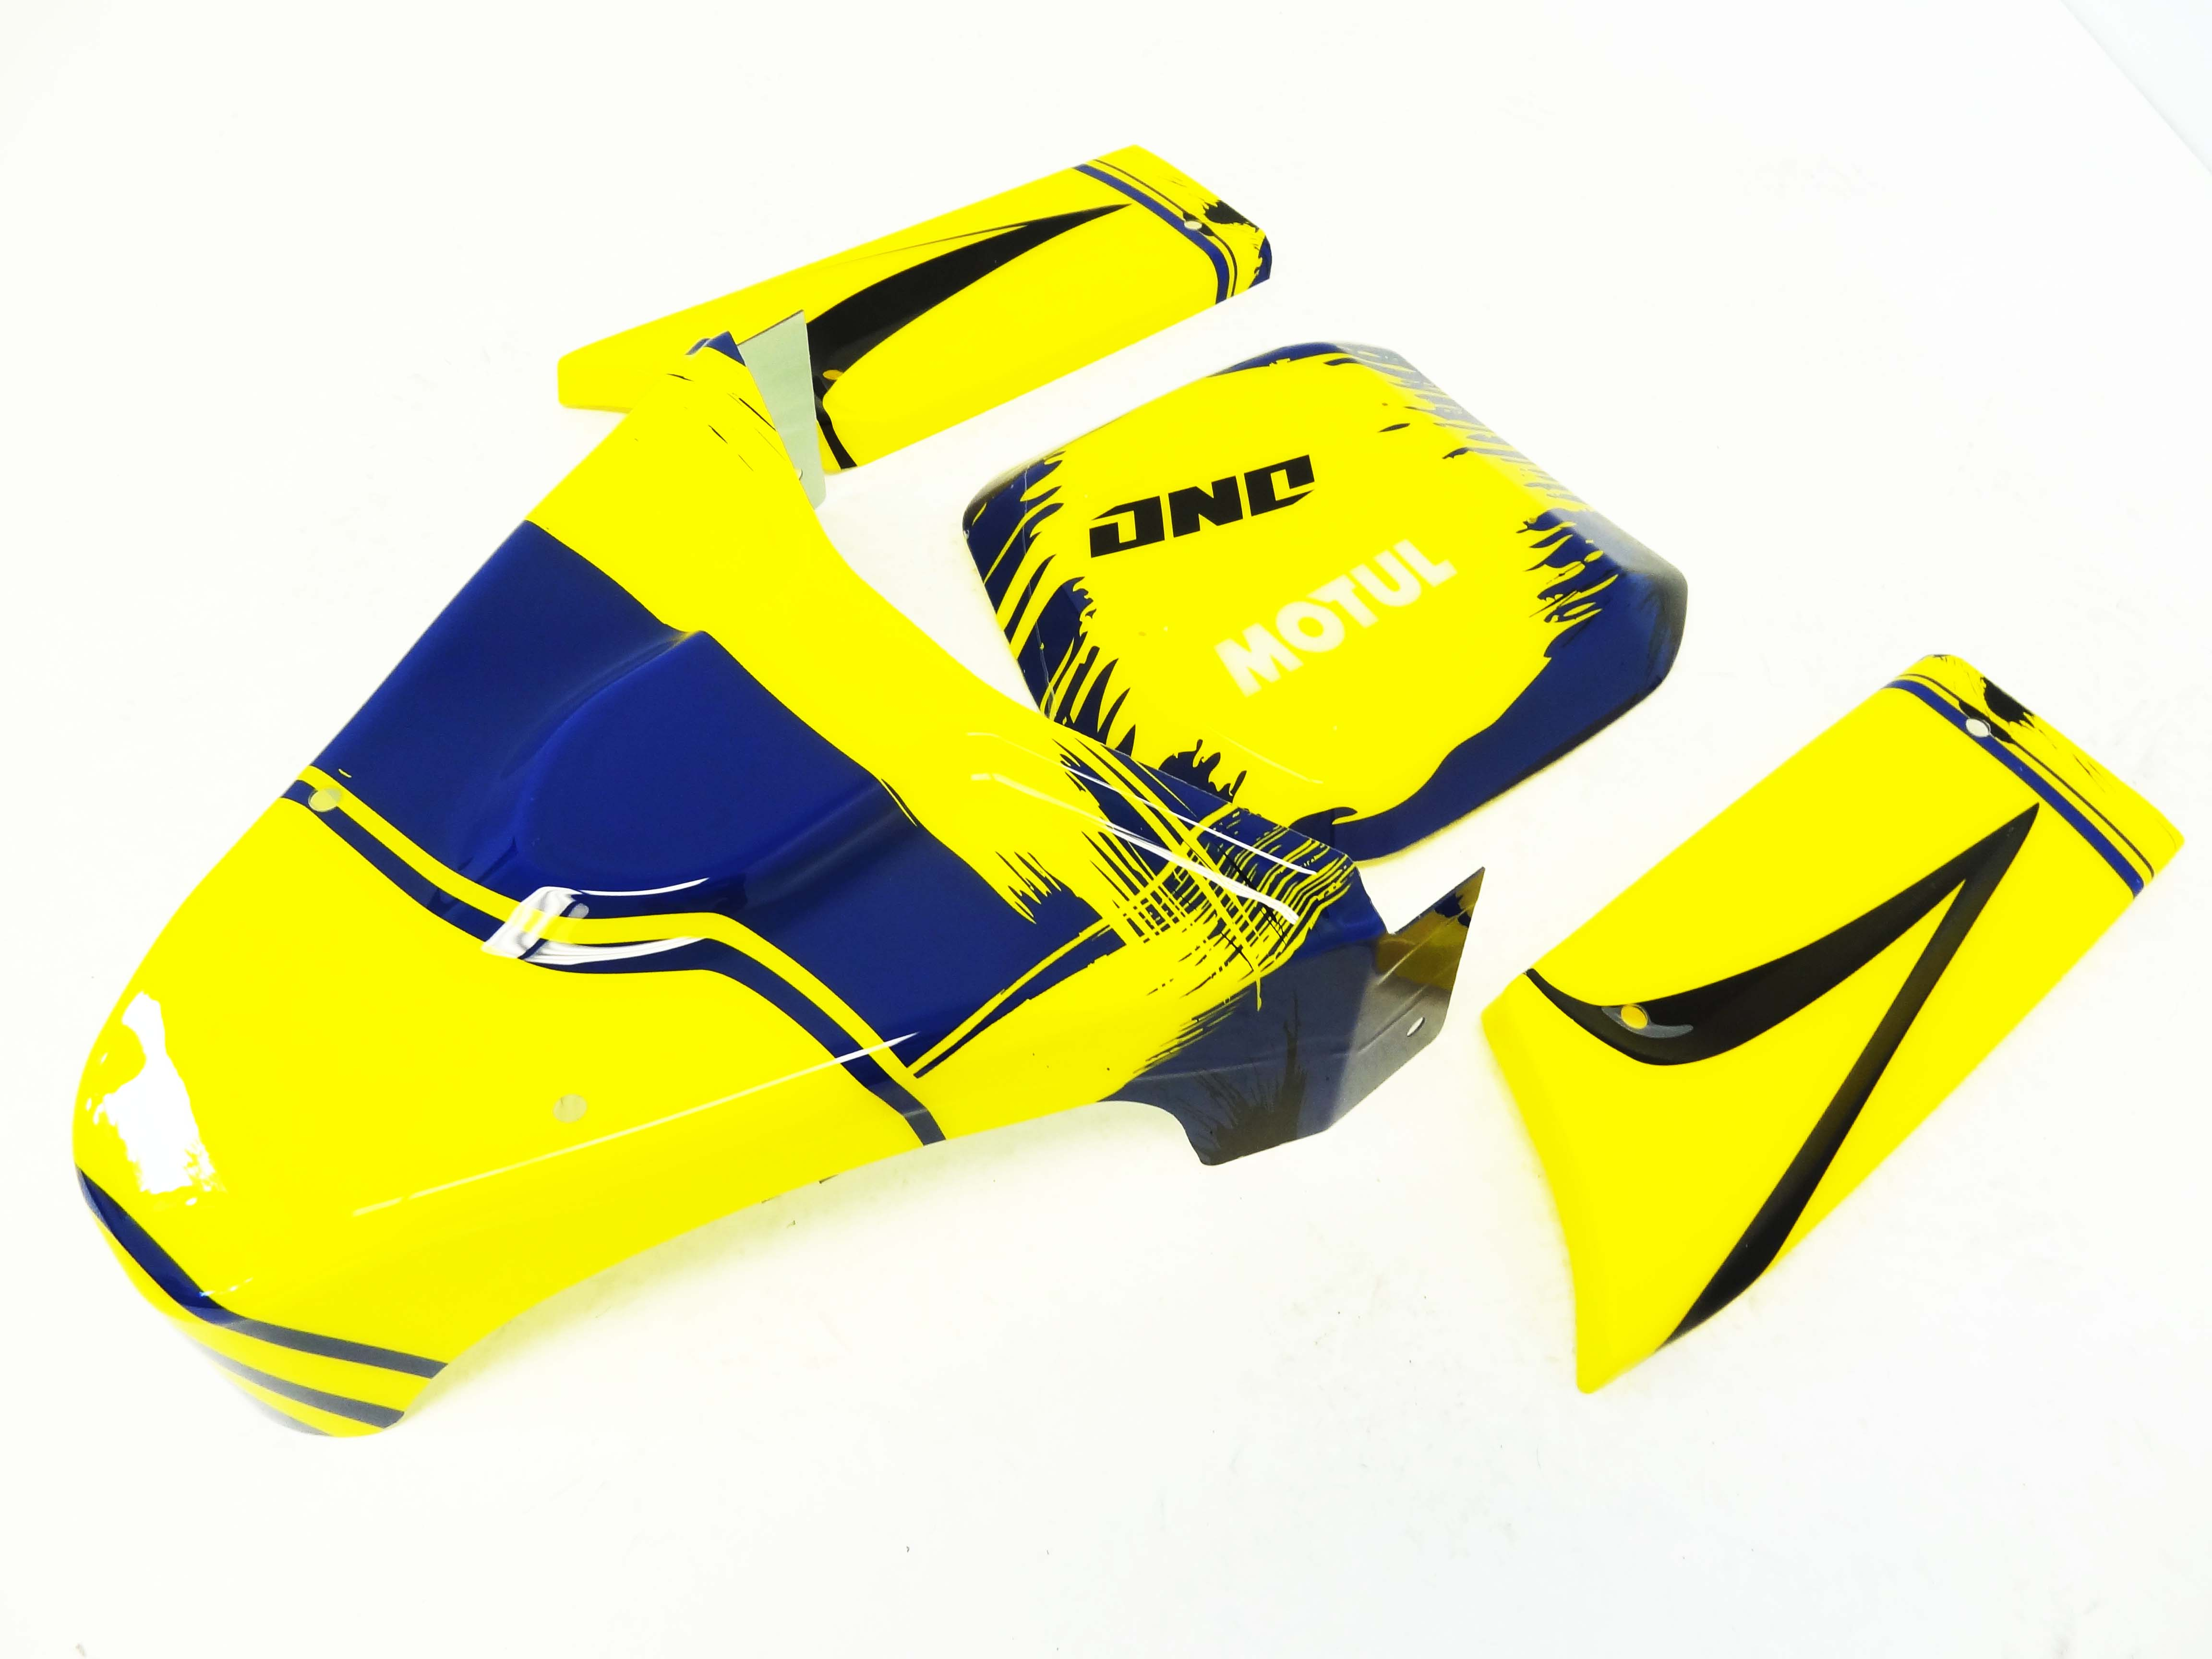 Panel Kit for Internal Roll Cage (yellow/blue)